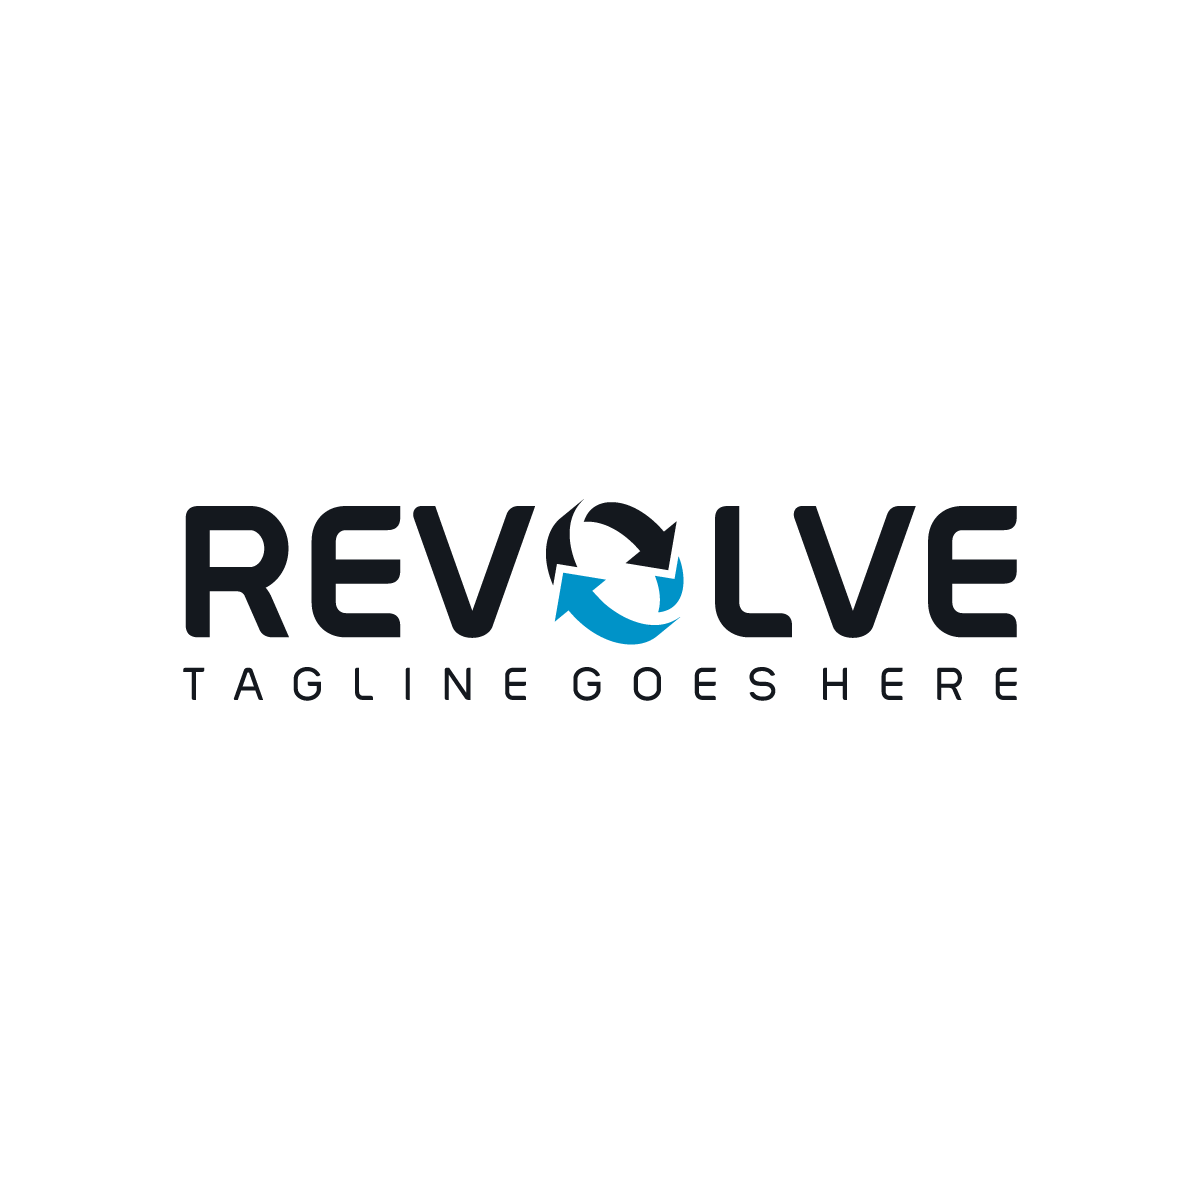 Stylish Revolve Logo Design for Sale   #ScaleBranding #brand #business #capital #company #consulting #Corporate #escrow #financial #investment  #modern #product #Professional #recycling #simple #Stylish #sustainable #unique #ventures #wordmark #new